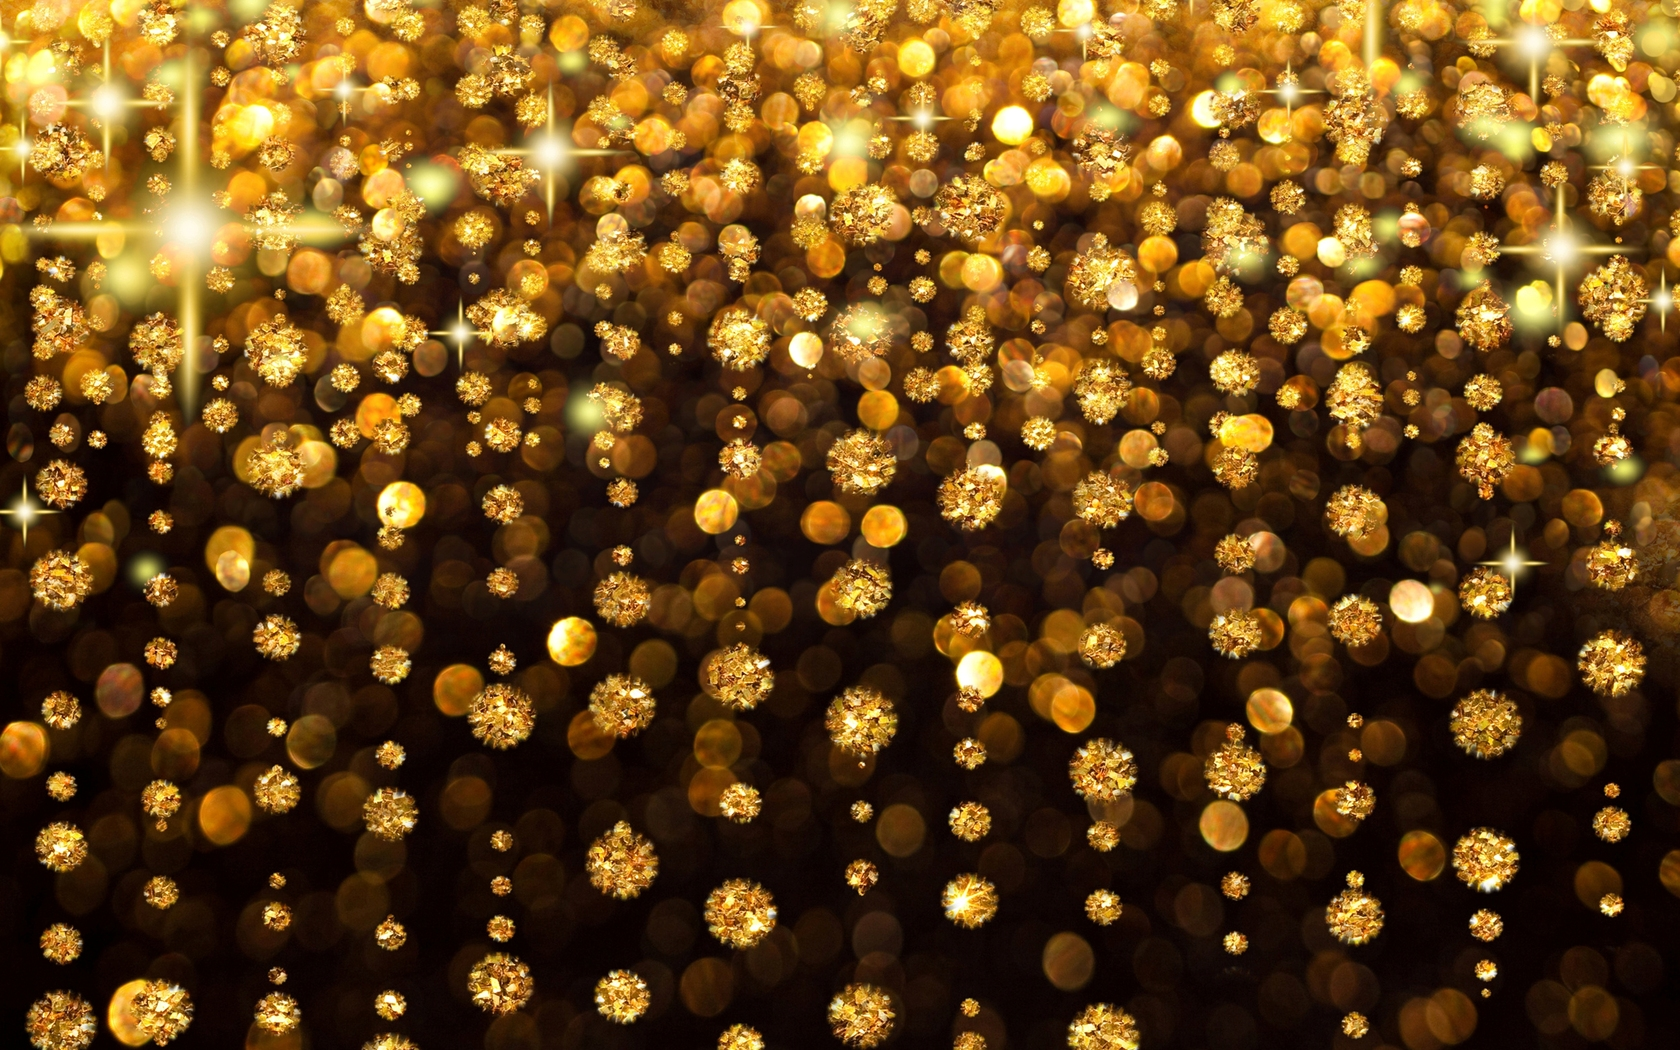 Gold Wallpapers glitter   Wallpaper 1680x1050